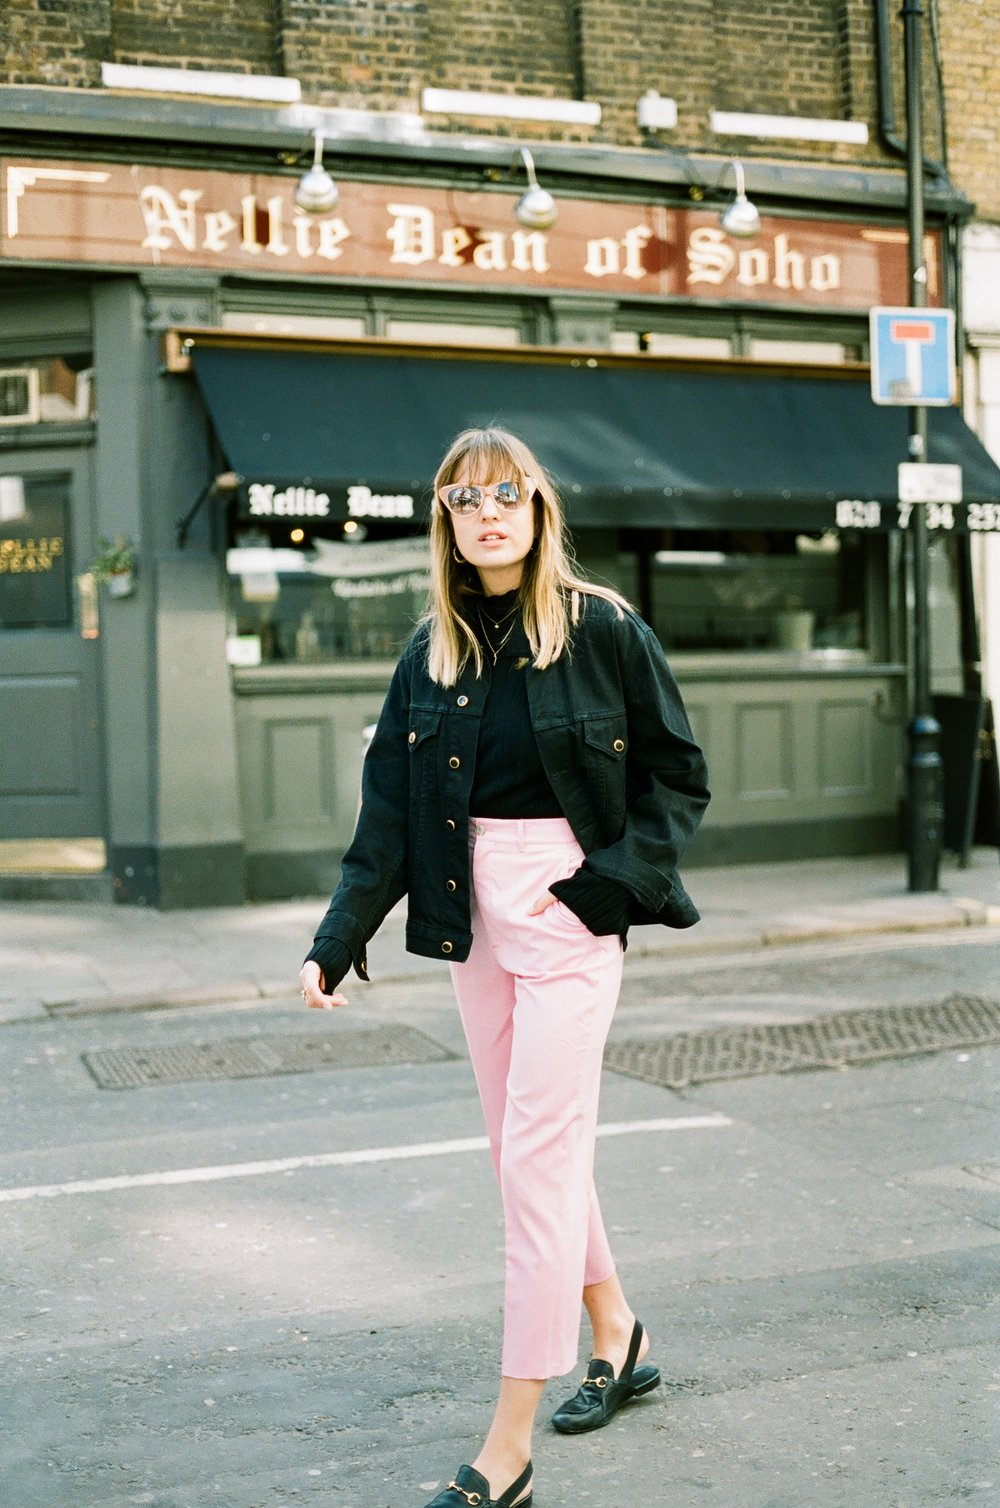 jacket: khaite trousers: gucci shoes: gucci sunglasses: no.21 knit: weekday   - click the links to shop.